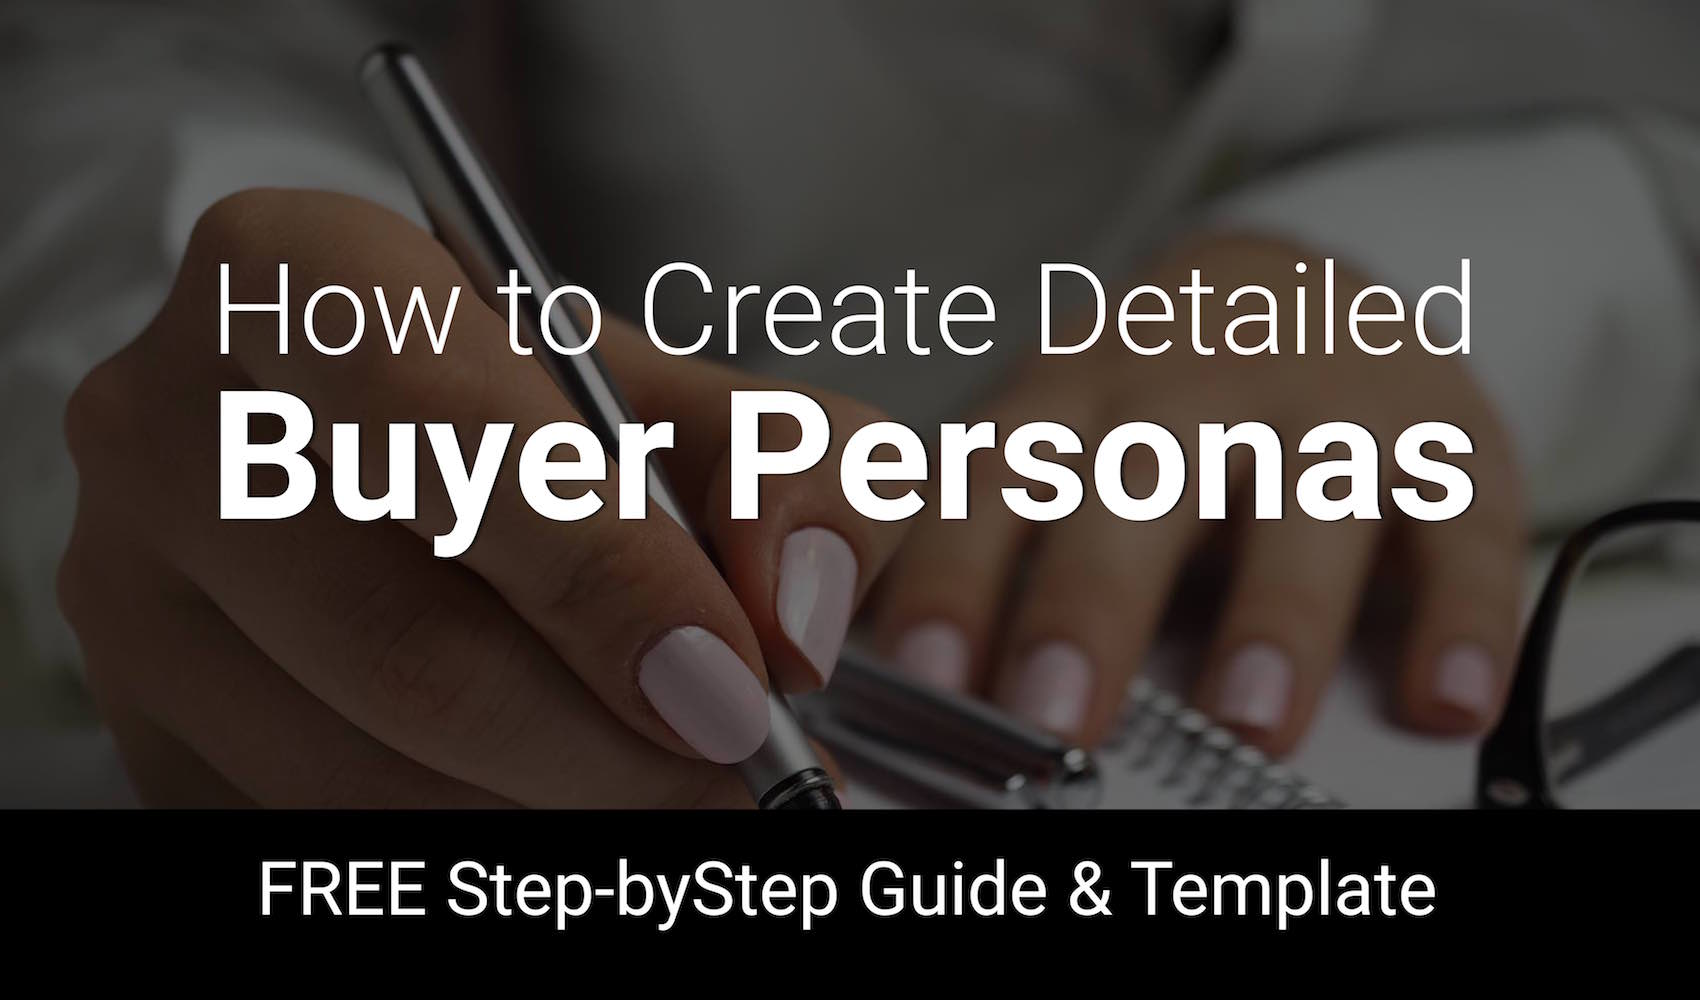 Create a Detailed Buyer Persona [and a FREE TEMPLATE]